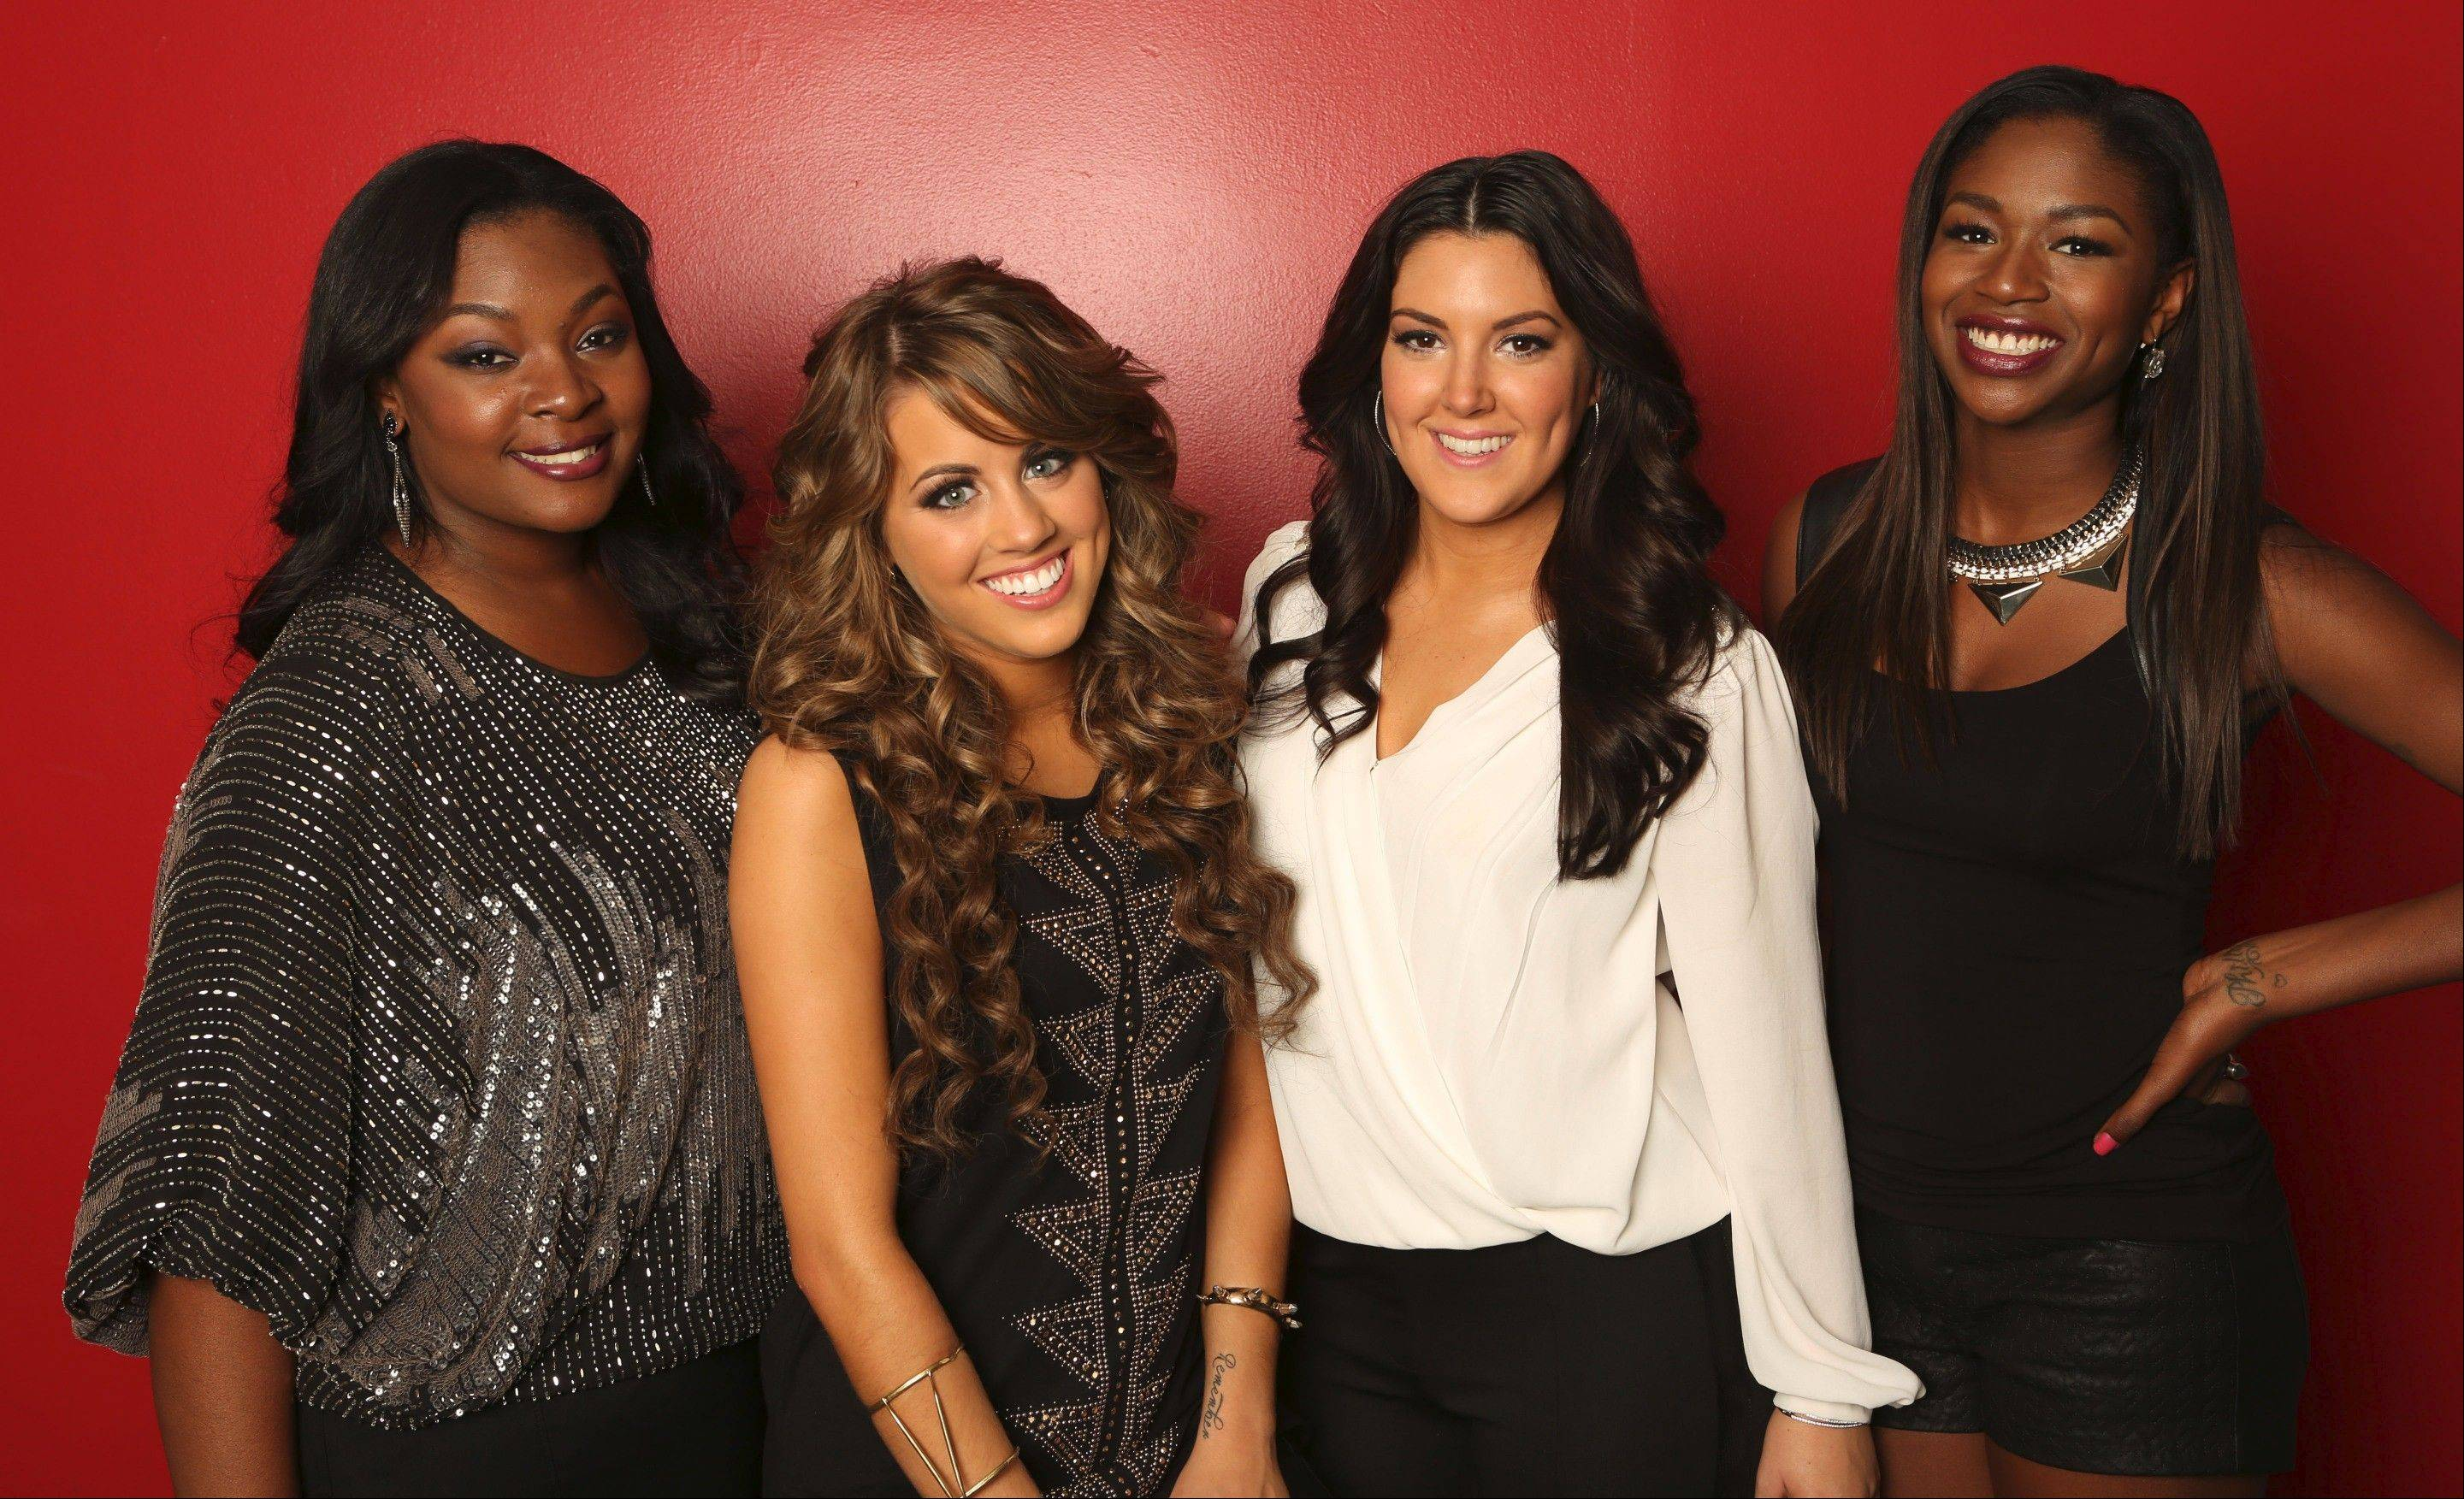 """American Idol"" finalists Candice Glover, Angie Miller, Kree Harrison and Amber Holcomb are set to perform at the ""American Idol Live! 2013"" tour at the Allstate Arena."